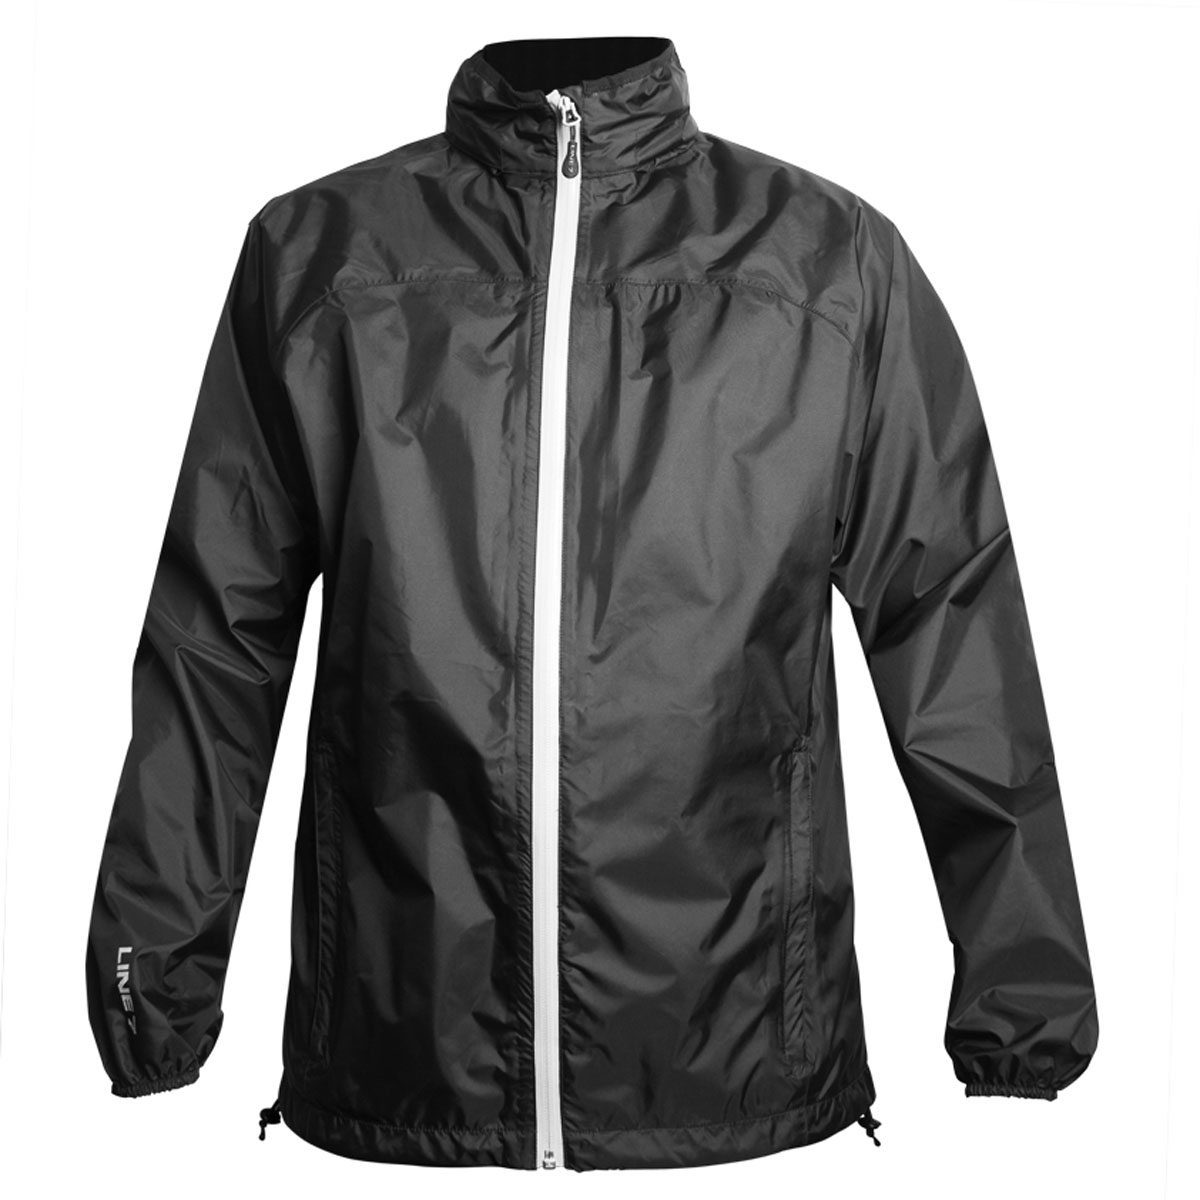 LINE 7 UNISEX SPRAY JACKET (GL5522)